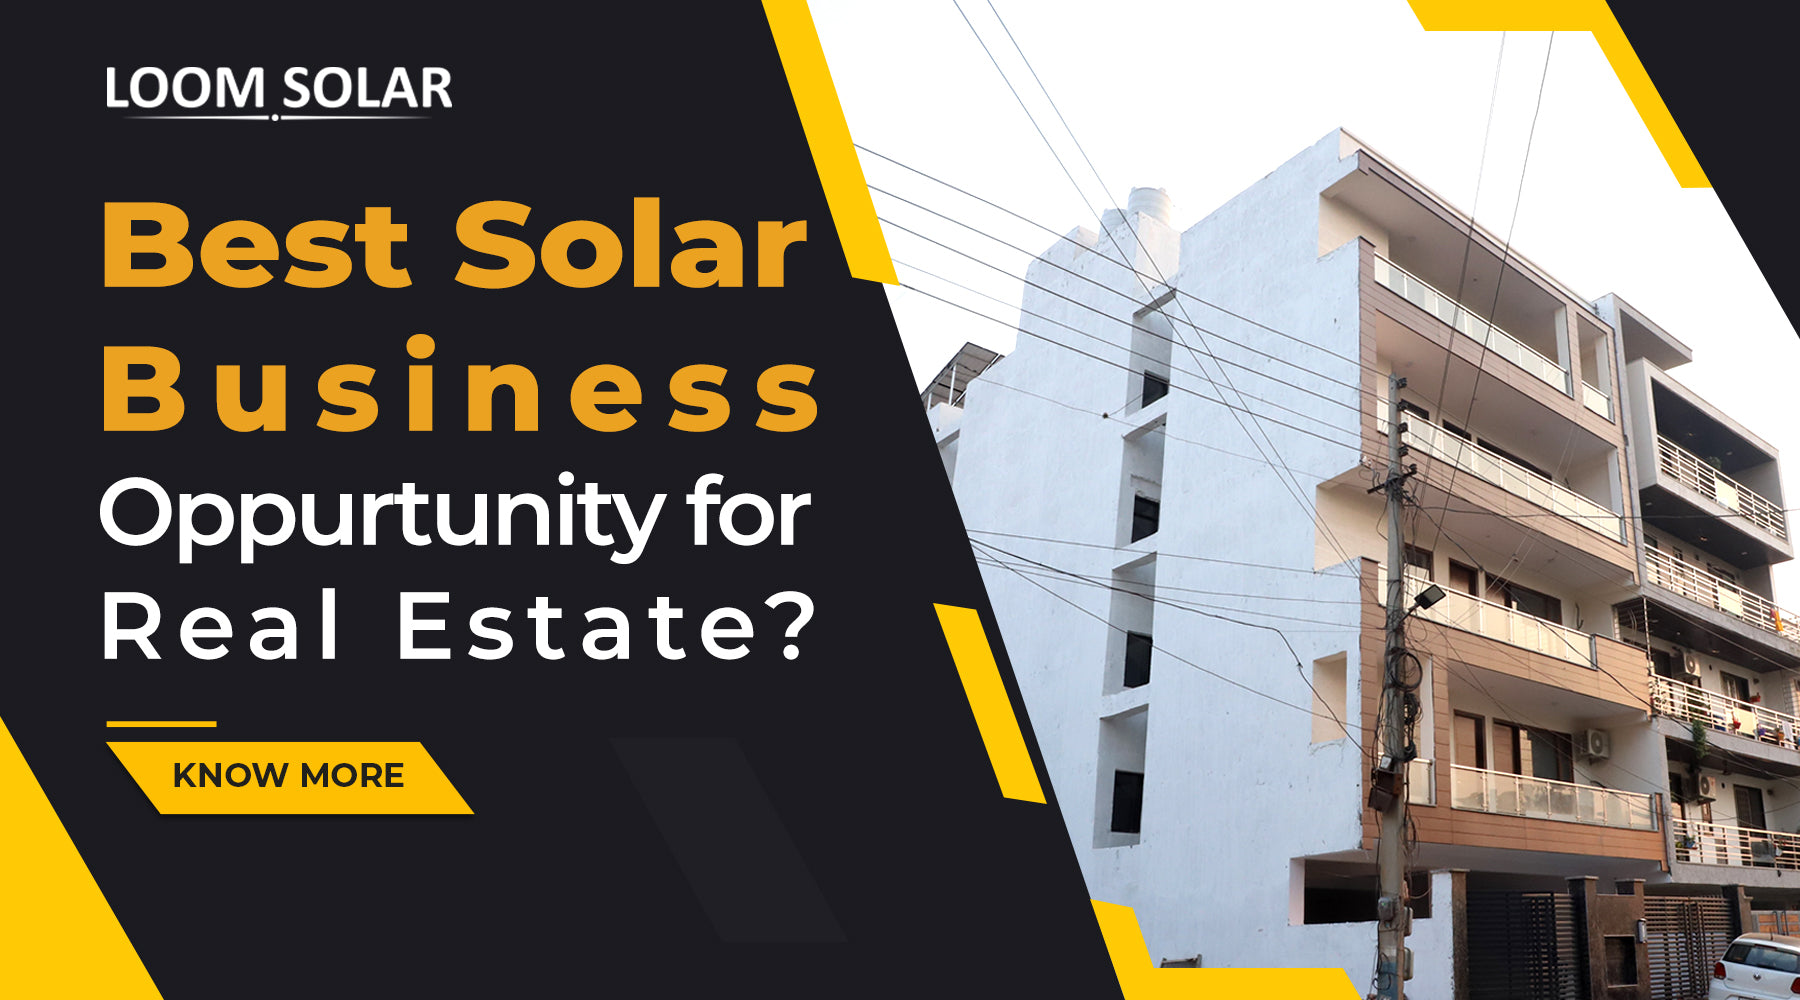 Top 3 Business Opportunity in Solar for Real Estate?